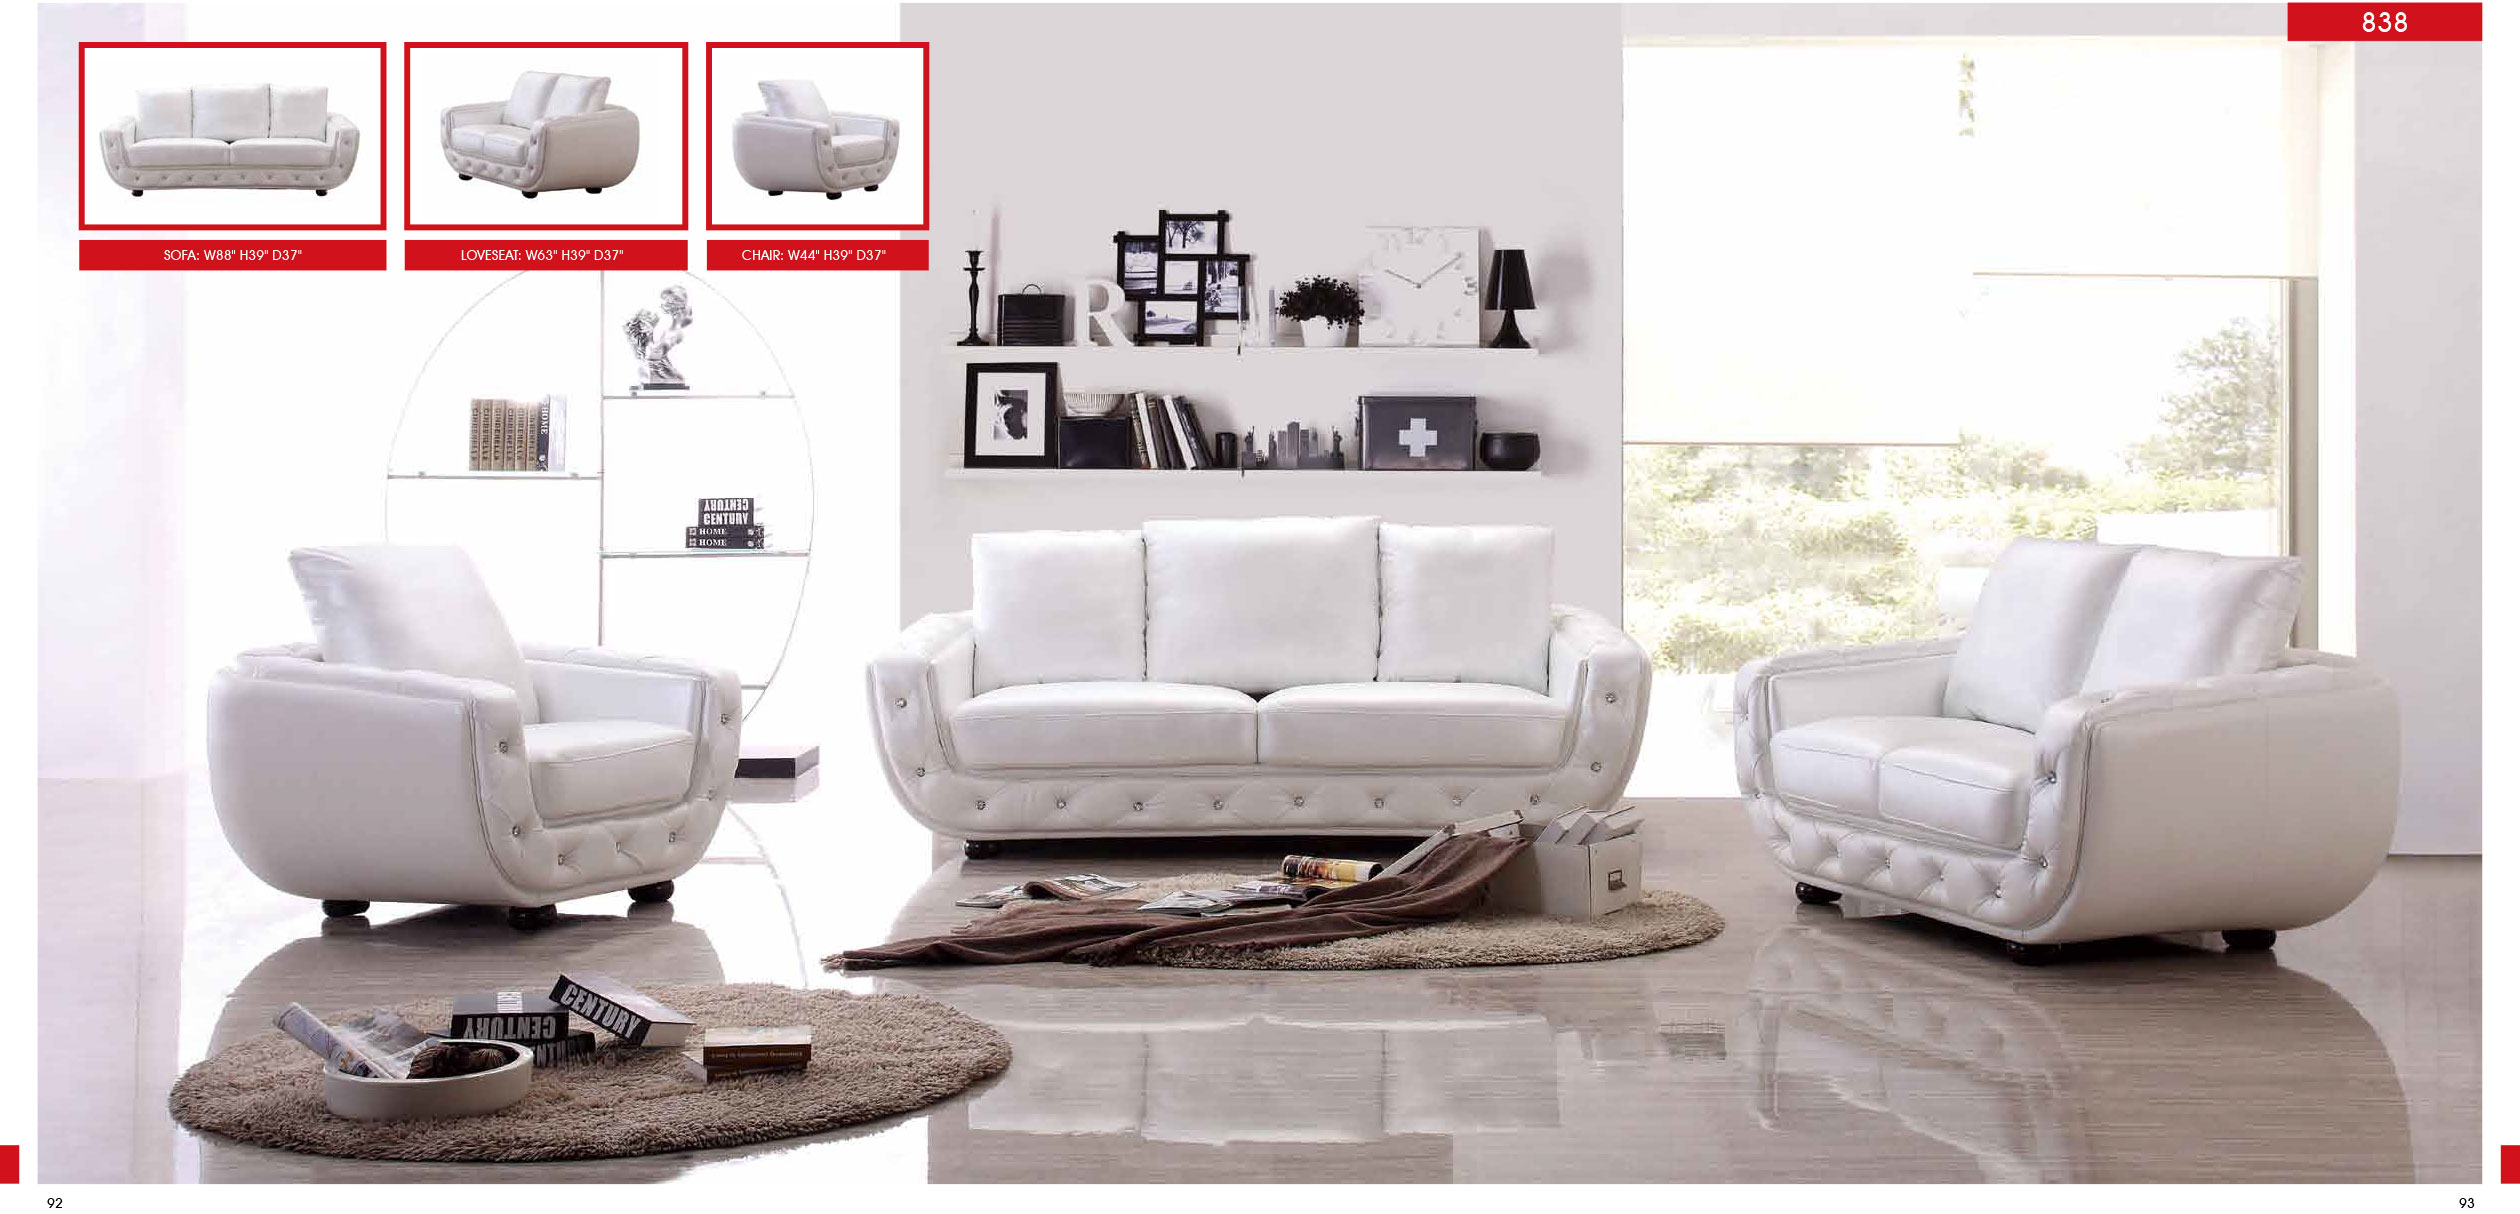 838 Leather Living Room Furniture Sofa Set , ESF - Italmoda ...